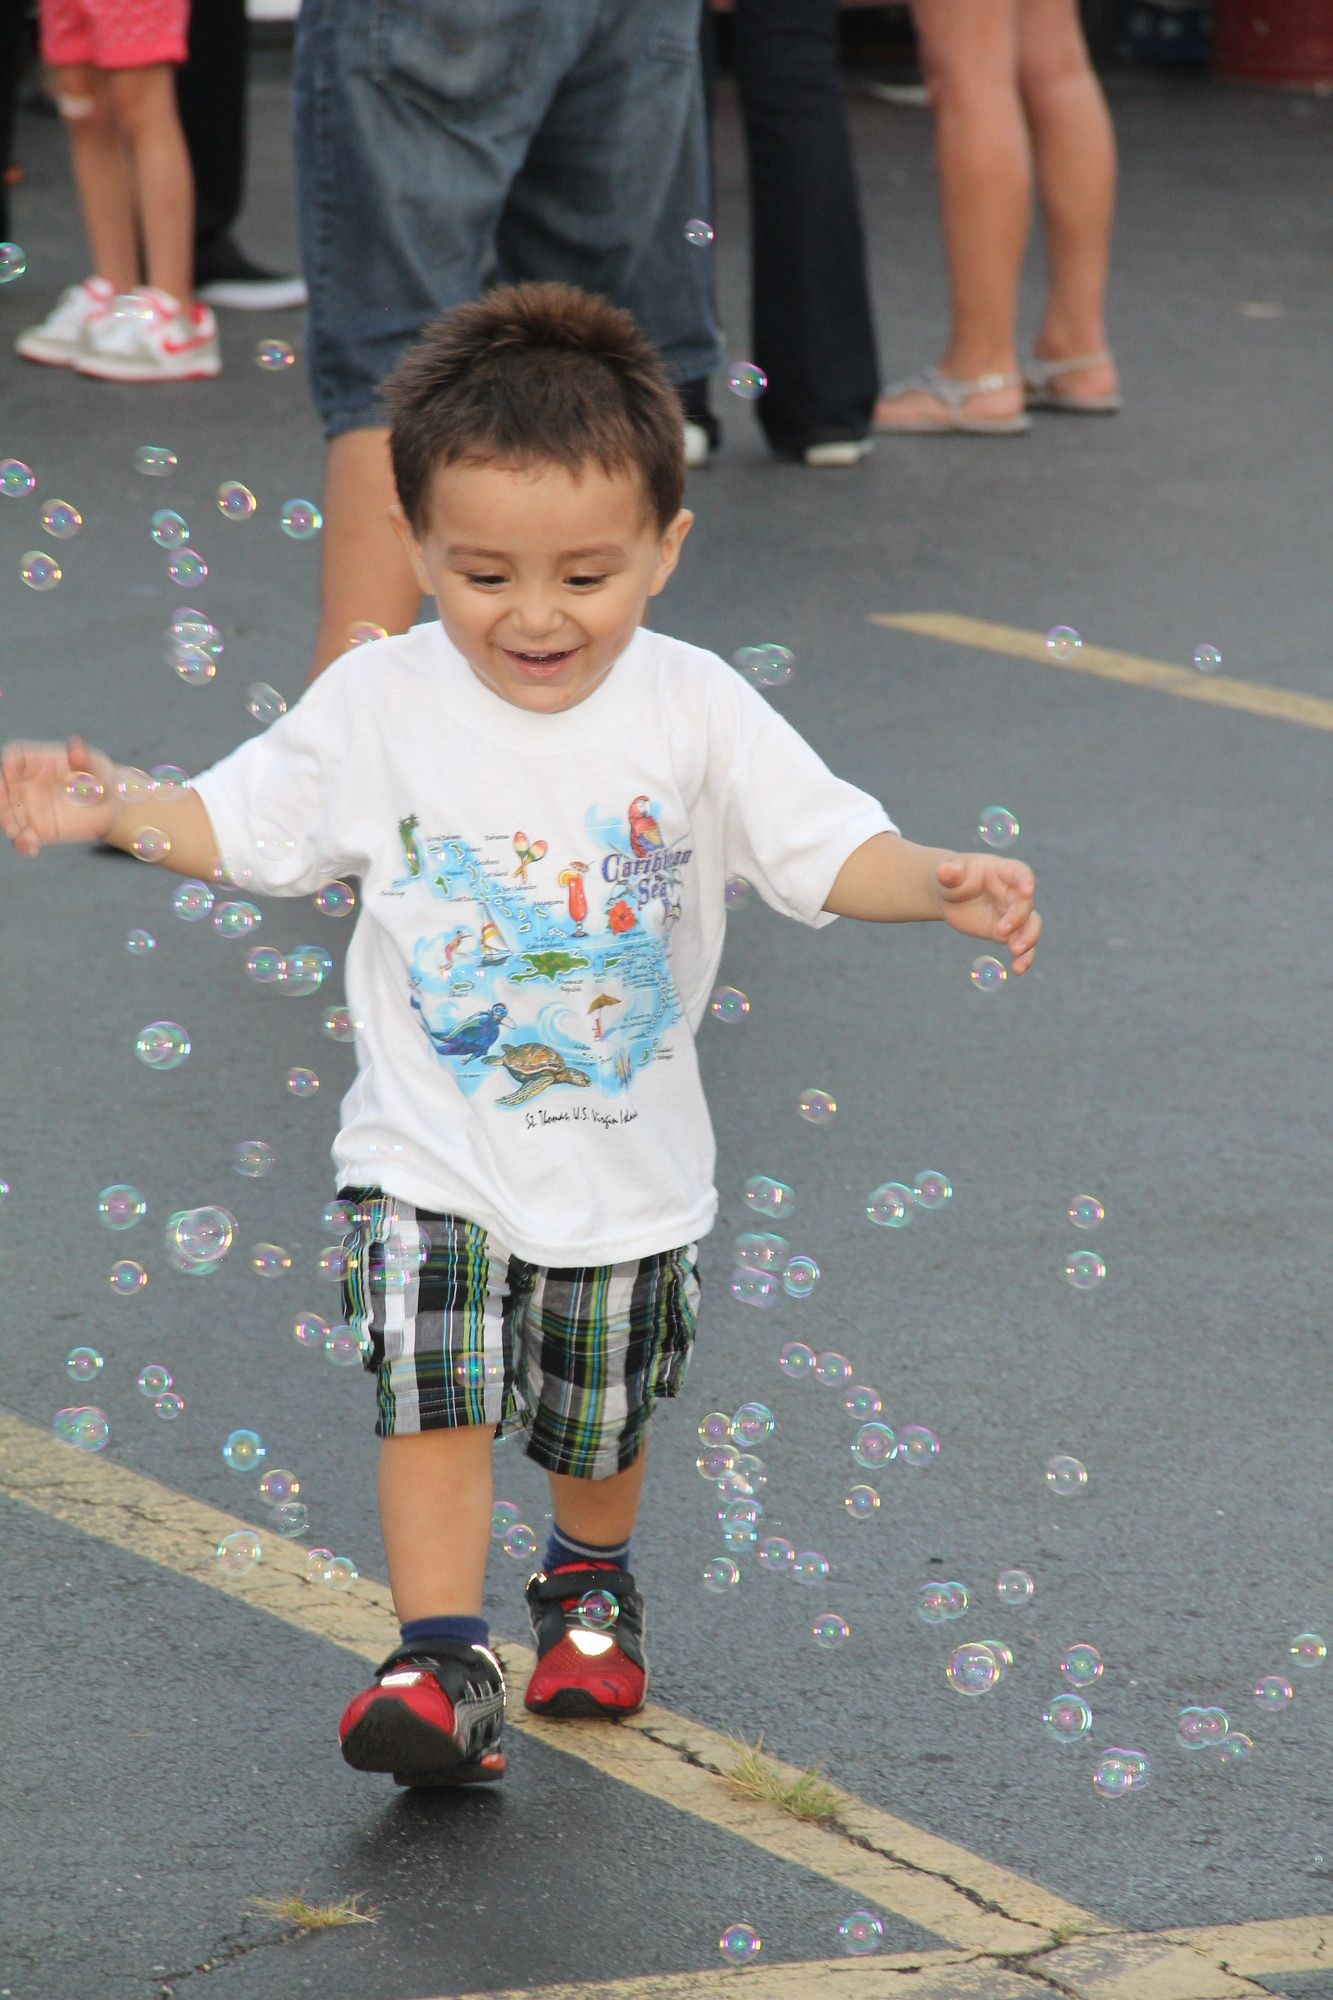 Anderson Morroquin had a bubbly good time at the feast.